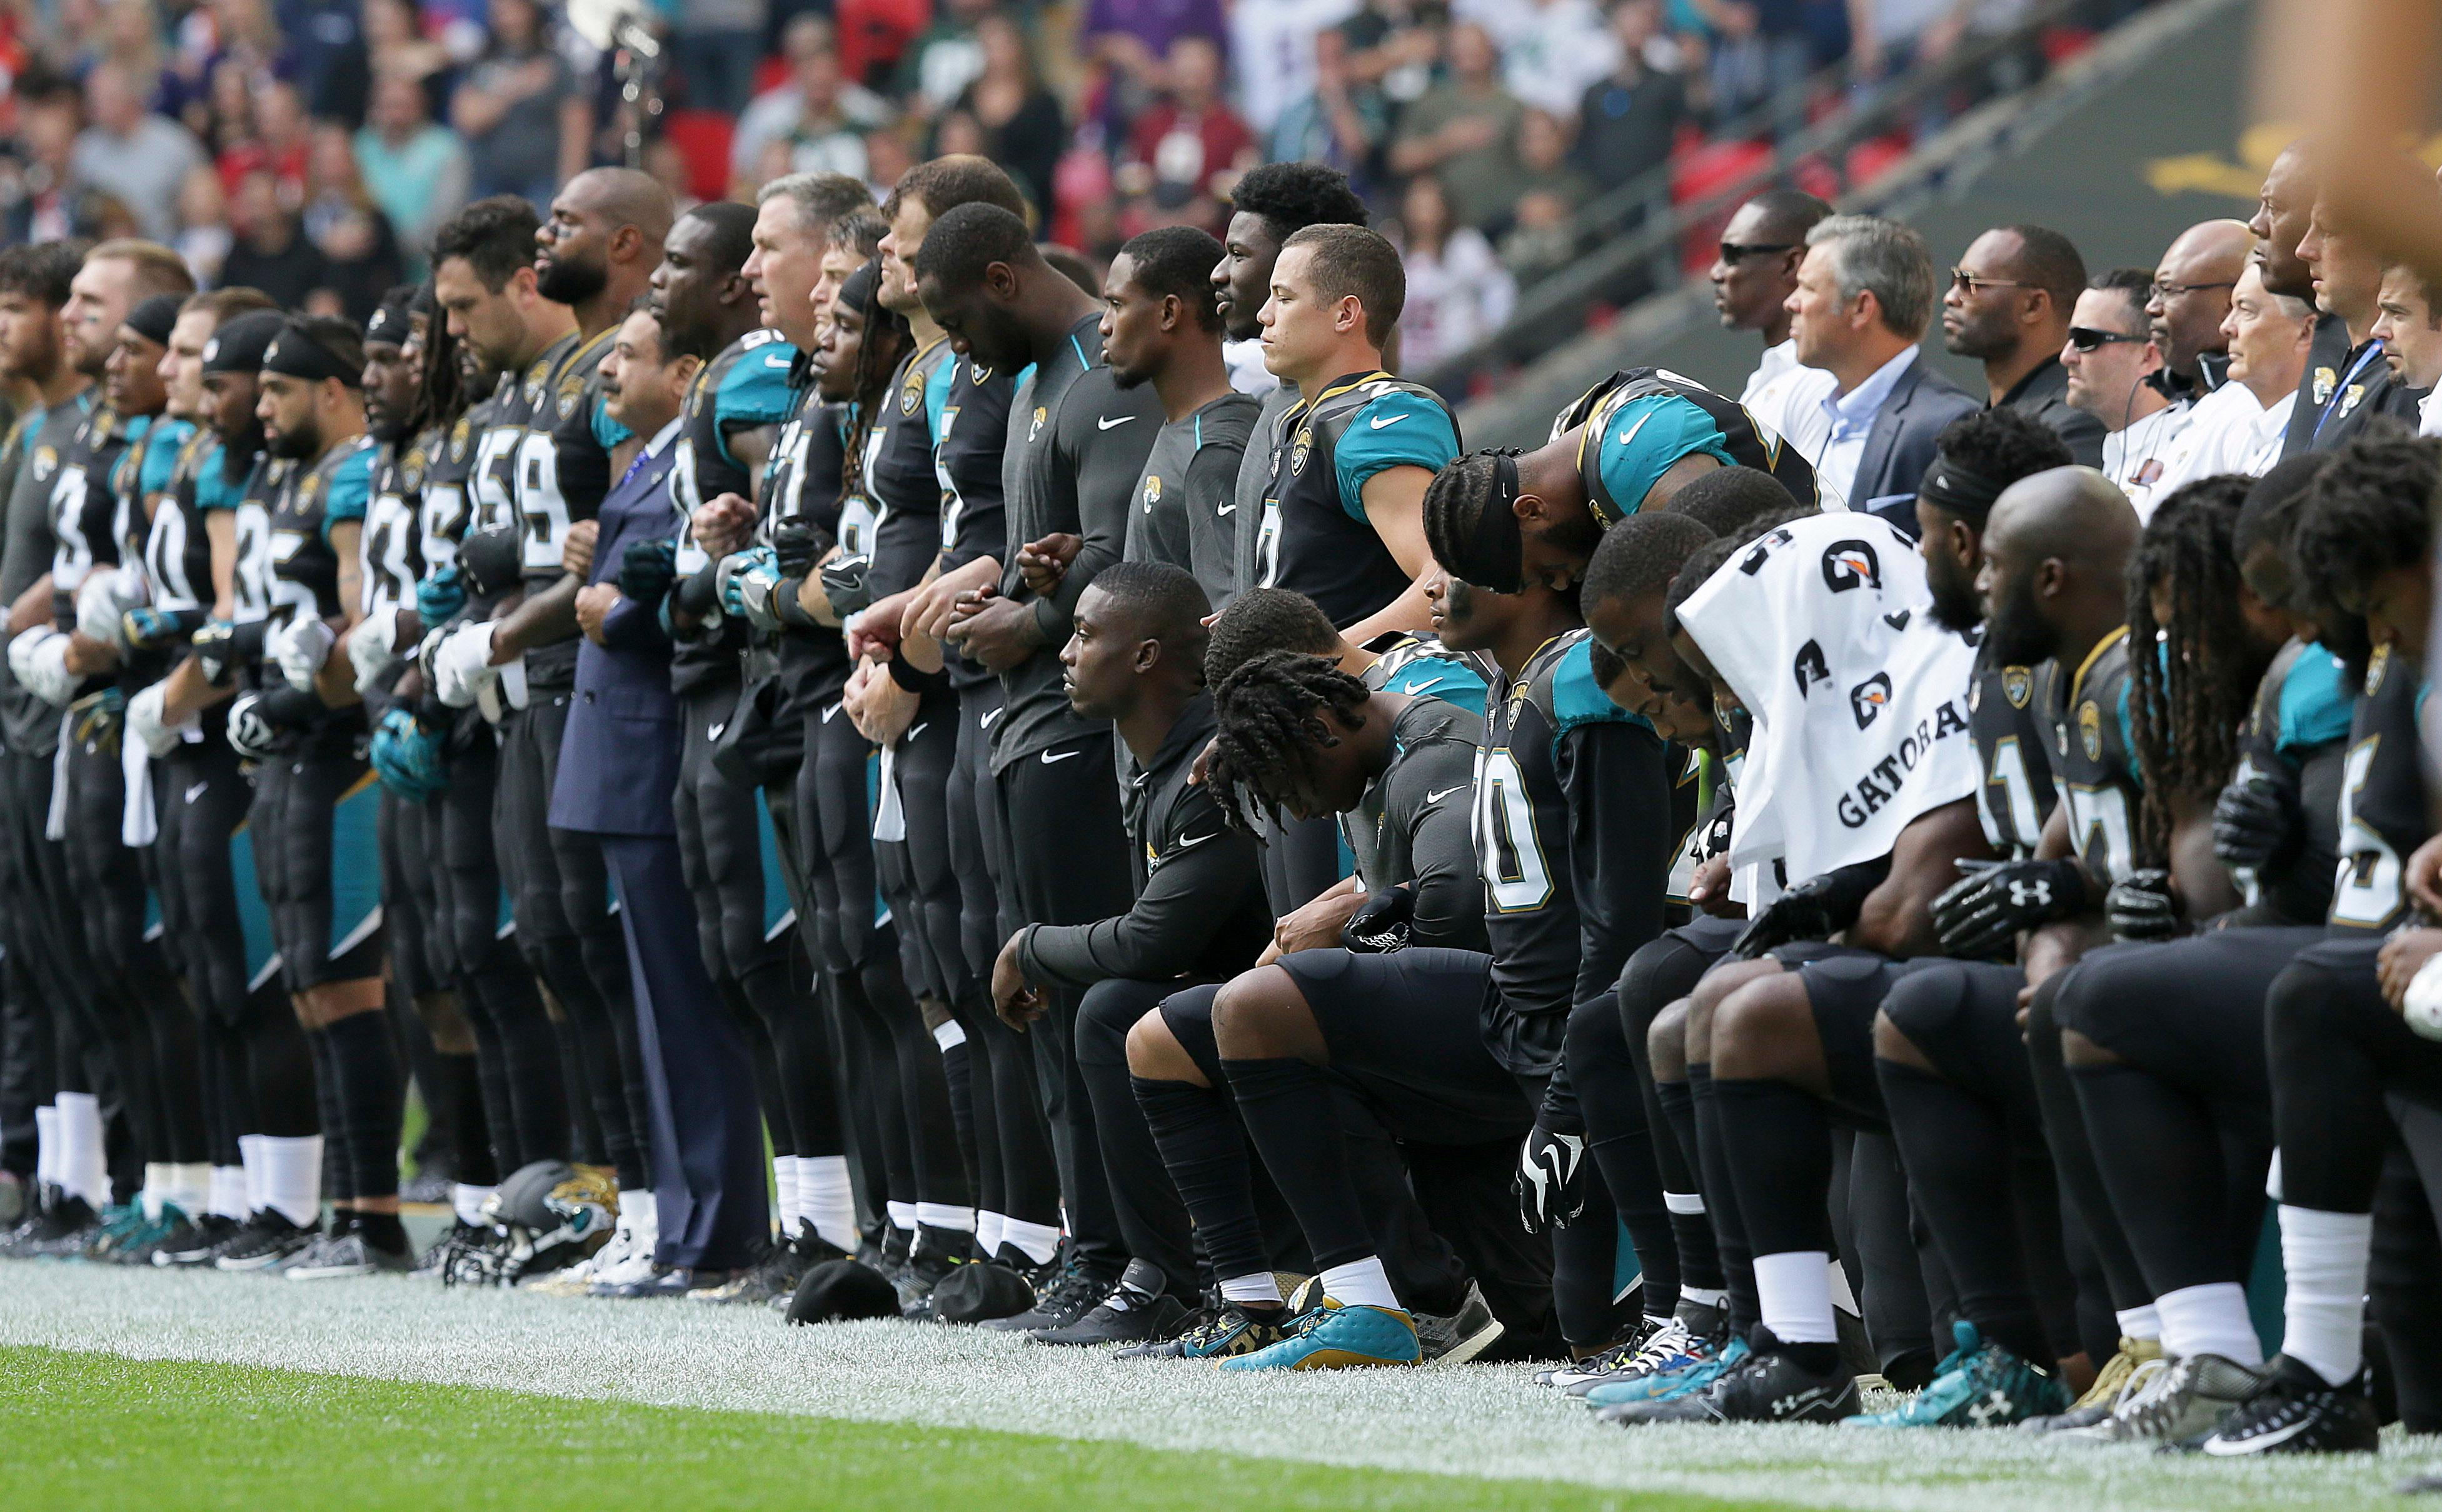 Jacksonville Jaguars players lock arms and kneel down during the playing of the U.S. national anthem before an NFL football game against the Baltimore Ravens at Wembley Stadium in London, Sunday Sept. 24, 2017. (AP Photo/Tim Ireland)